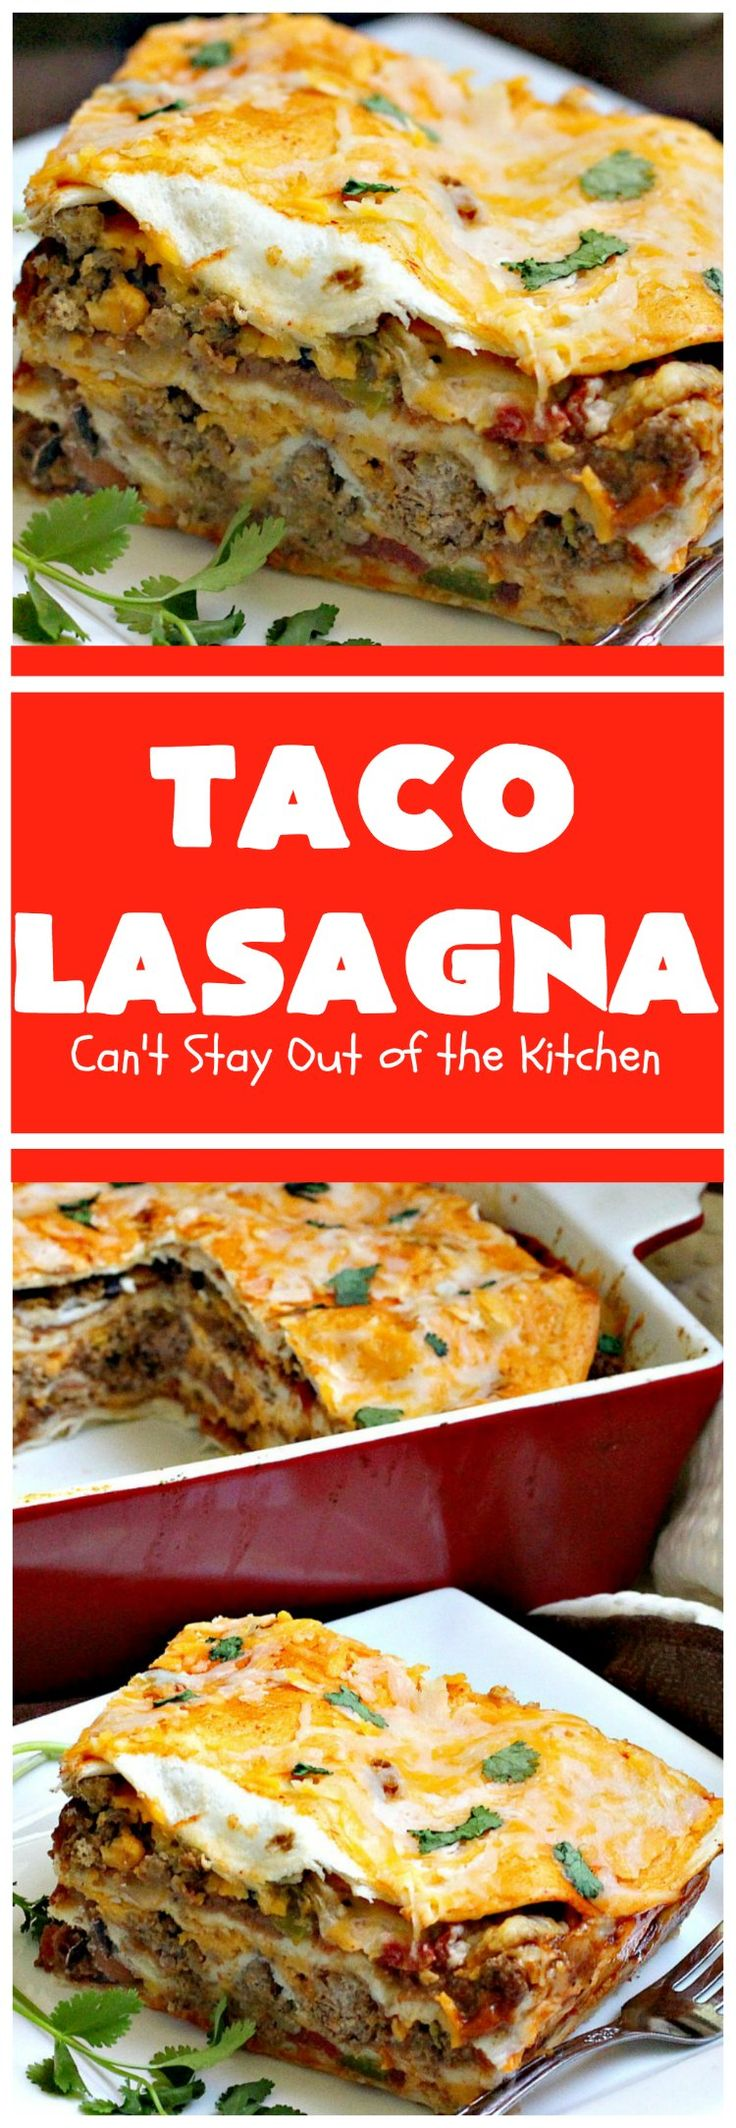 Taco Lasagna | Can't Stay Out of the Kitchen | spectacular #TexMex entree with a #beef, bean & #cheese filling. Fabulous company dinner. (pinned 7.8k)